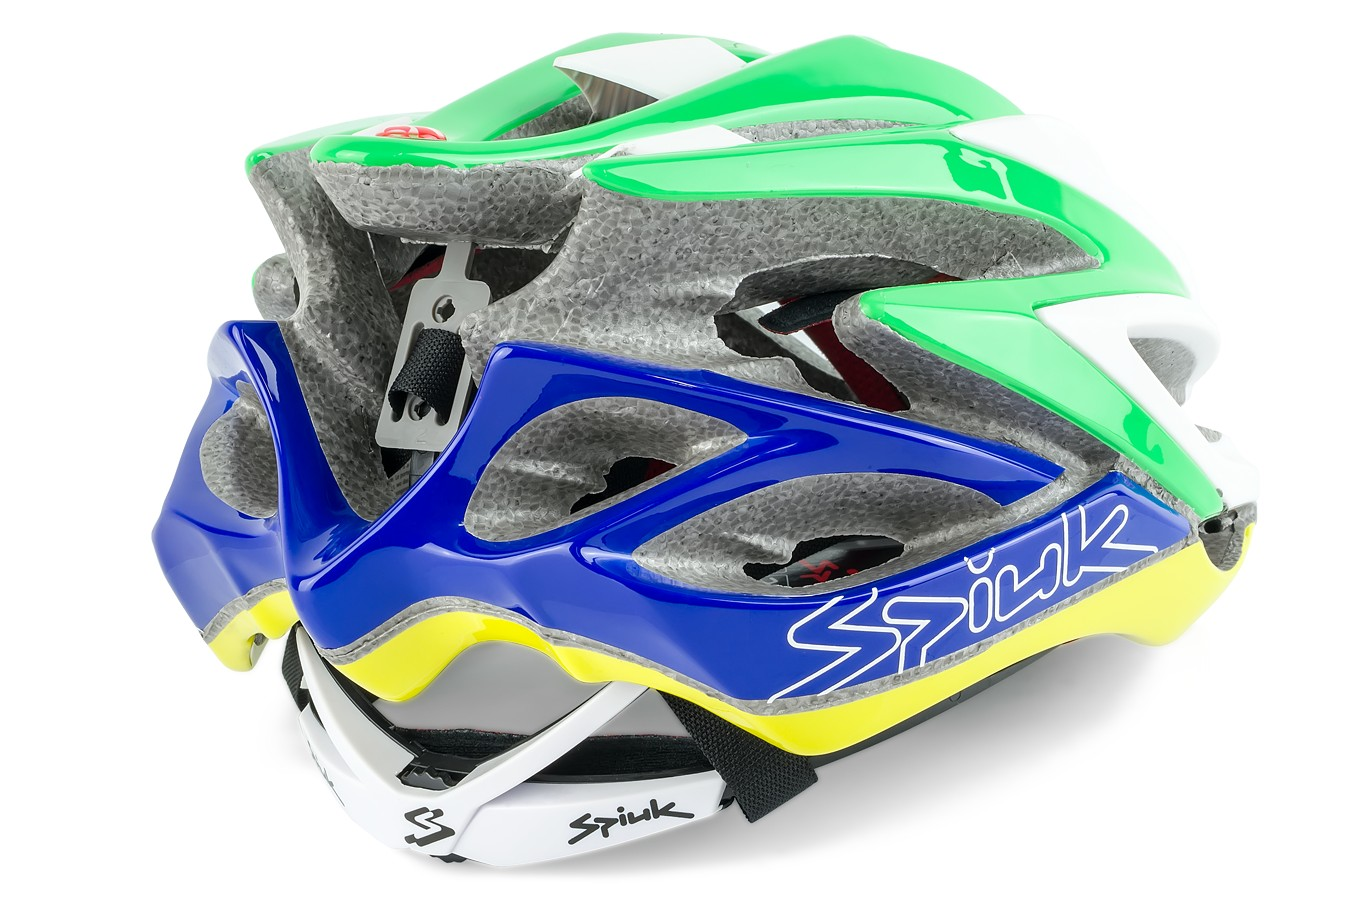 Capacete Ciclista Dharma Brasil - Spiuk